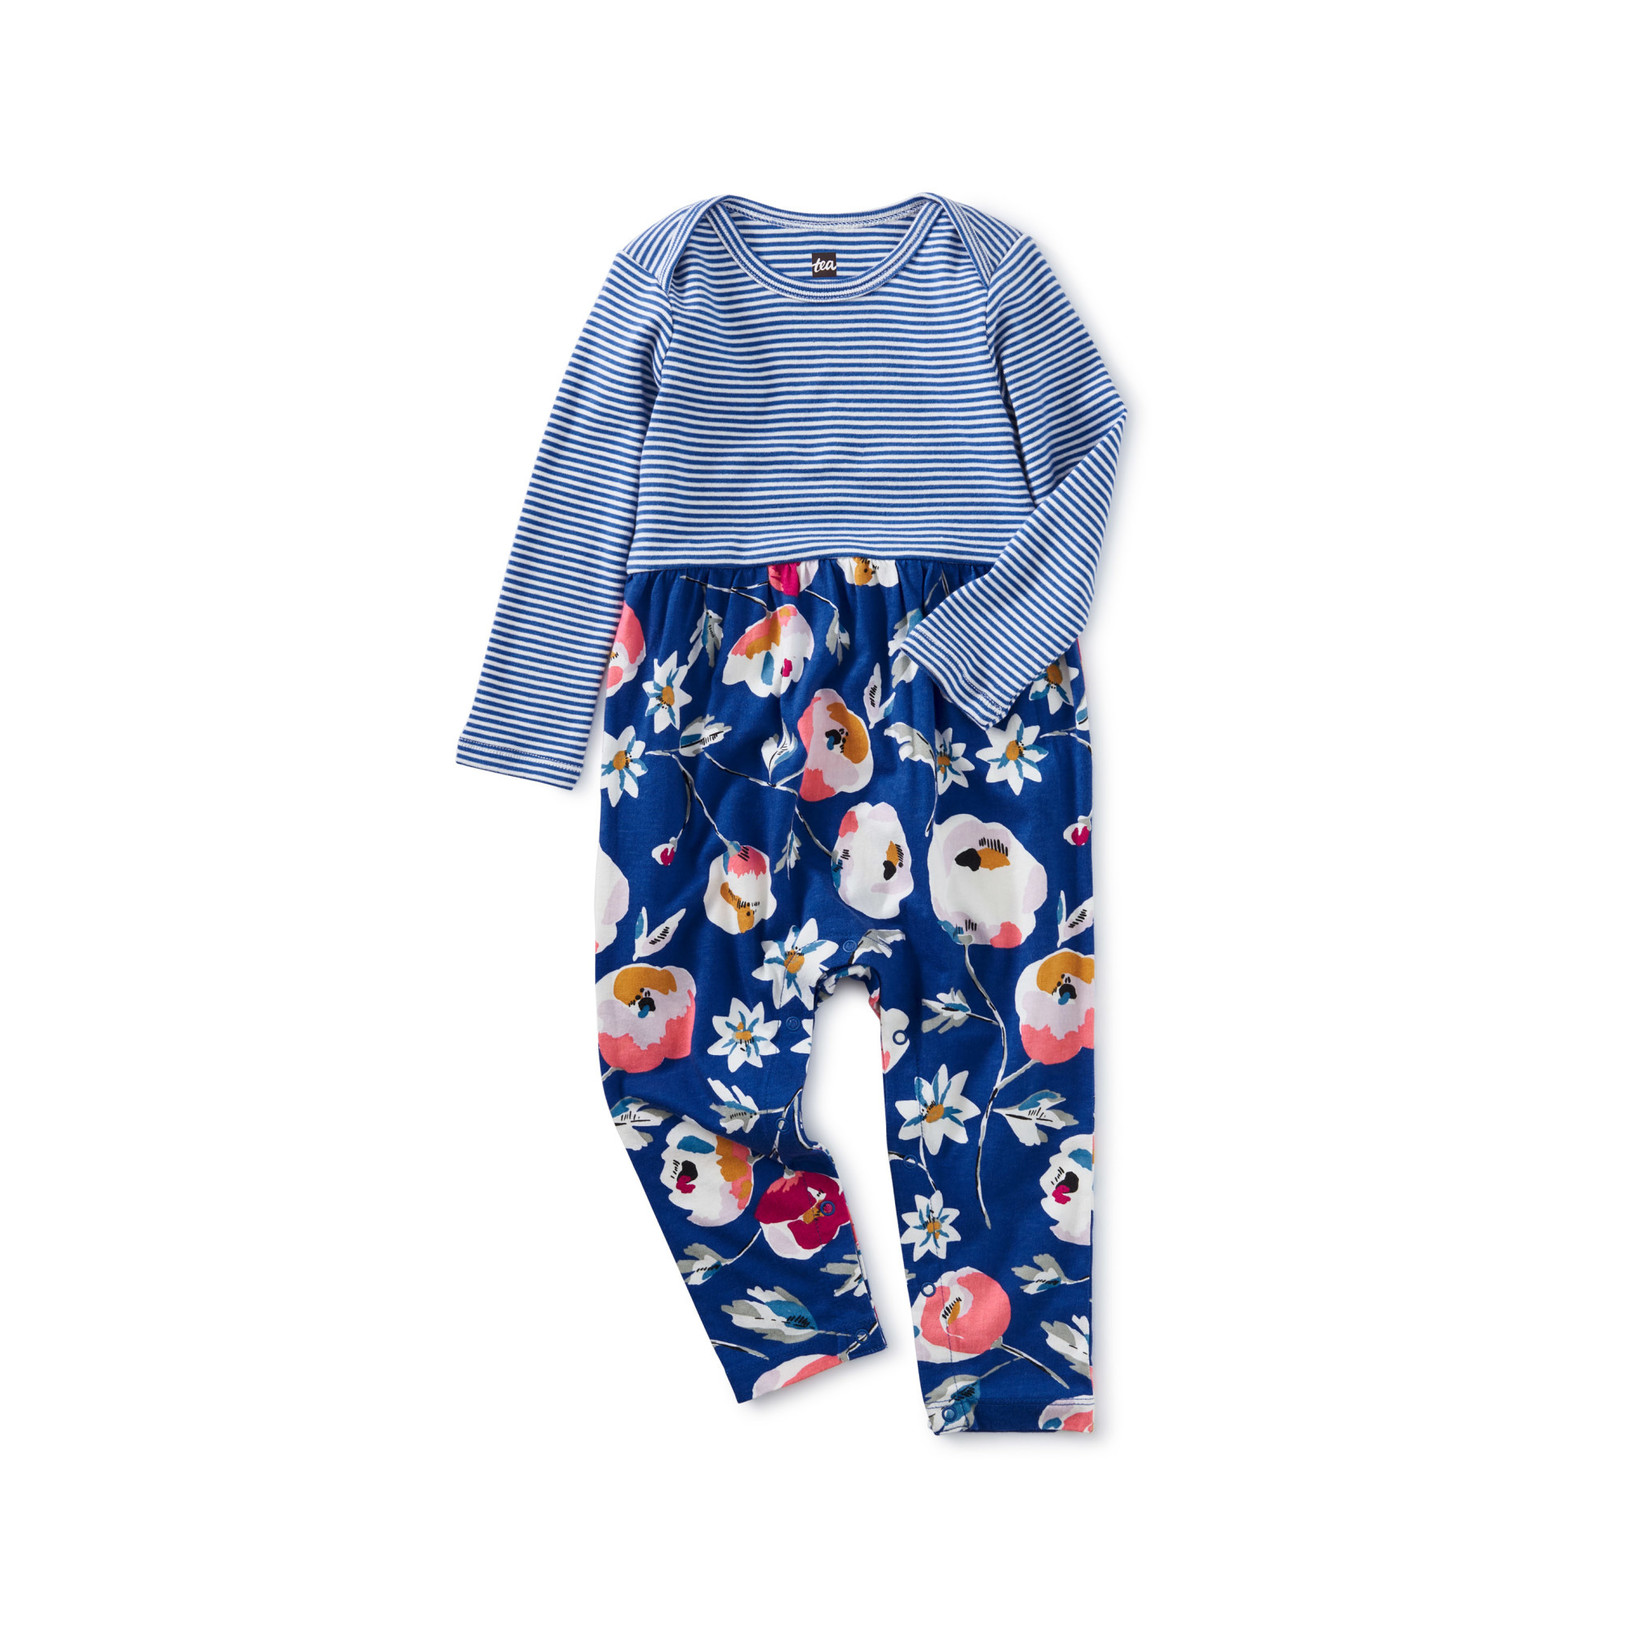 Tea Collection Mix It Up Baby Romper - Swedish Flowers in Imperial